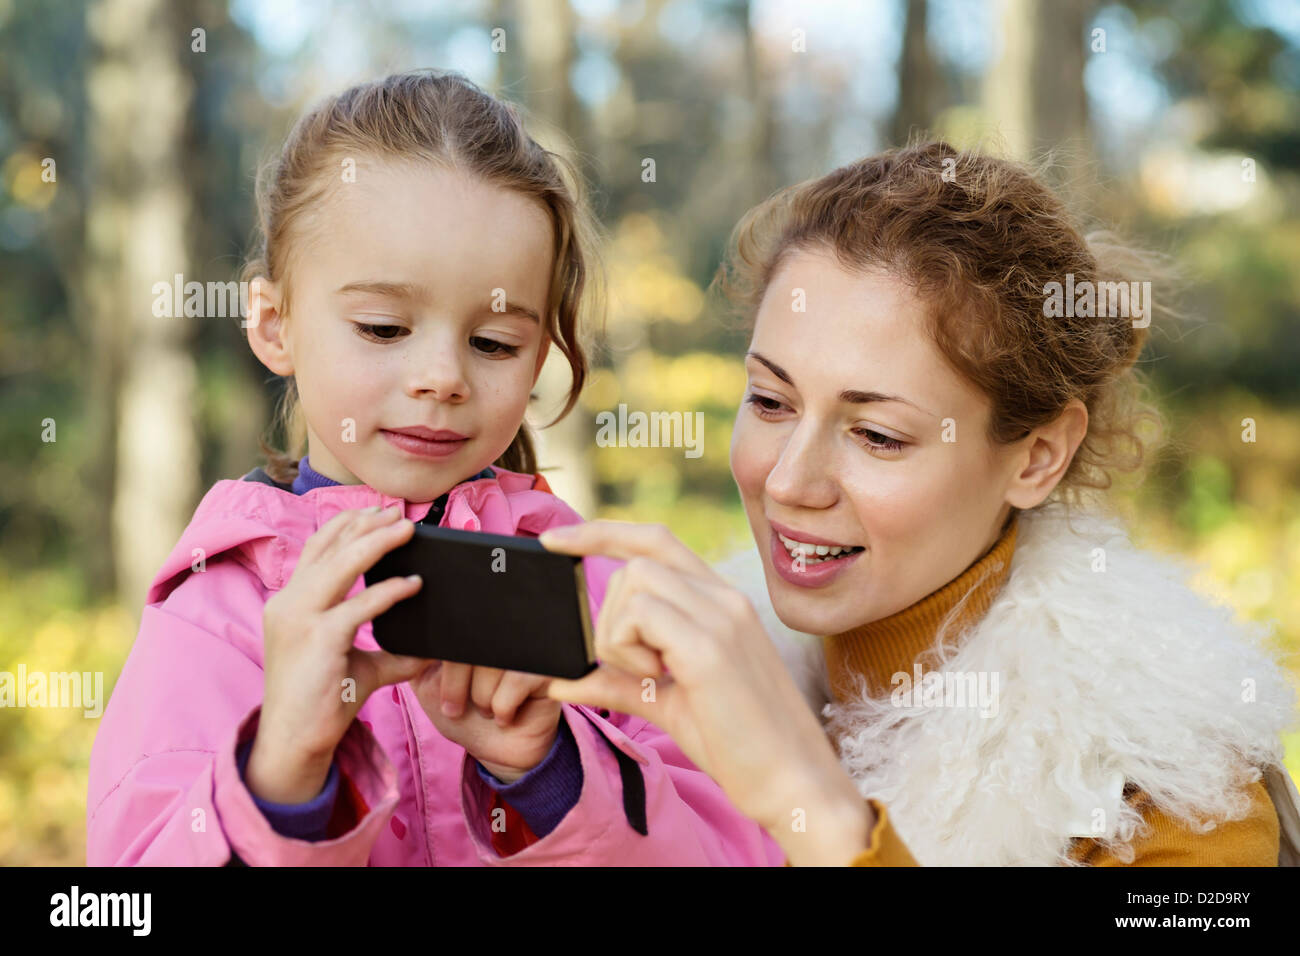 A young daughter showing her Mom something on a smart phone - Stock Image